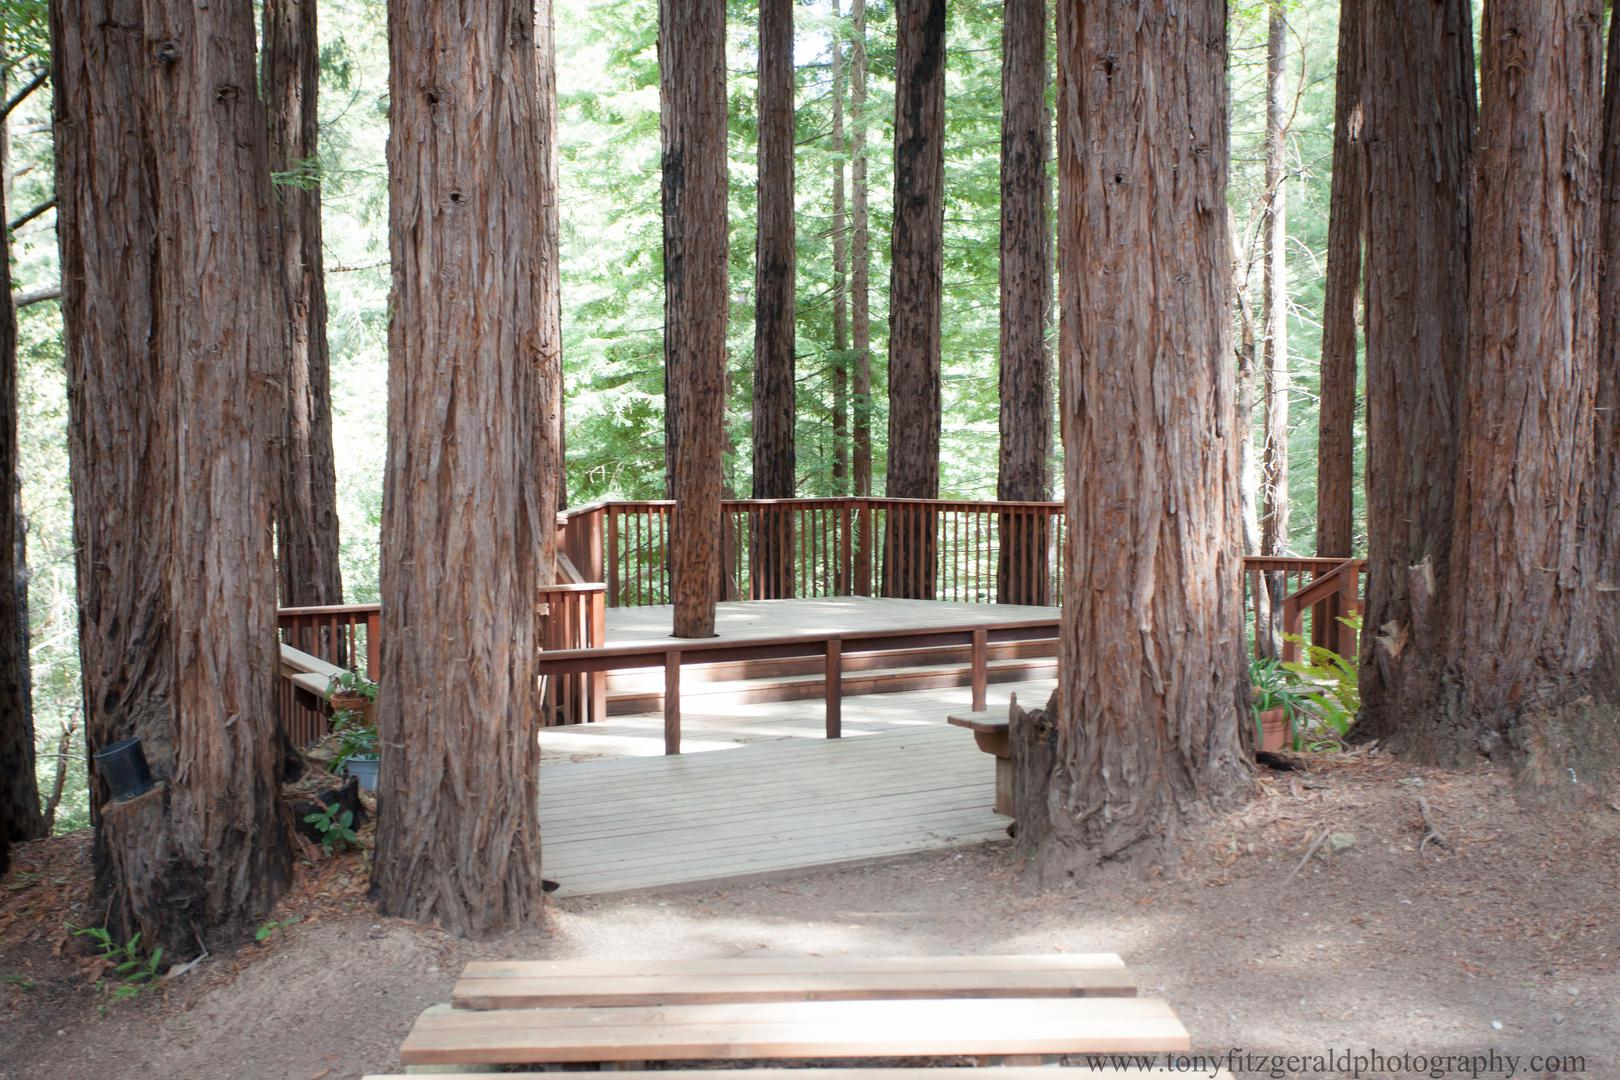 space at Amphitheatre of the Redwoods